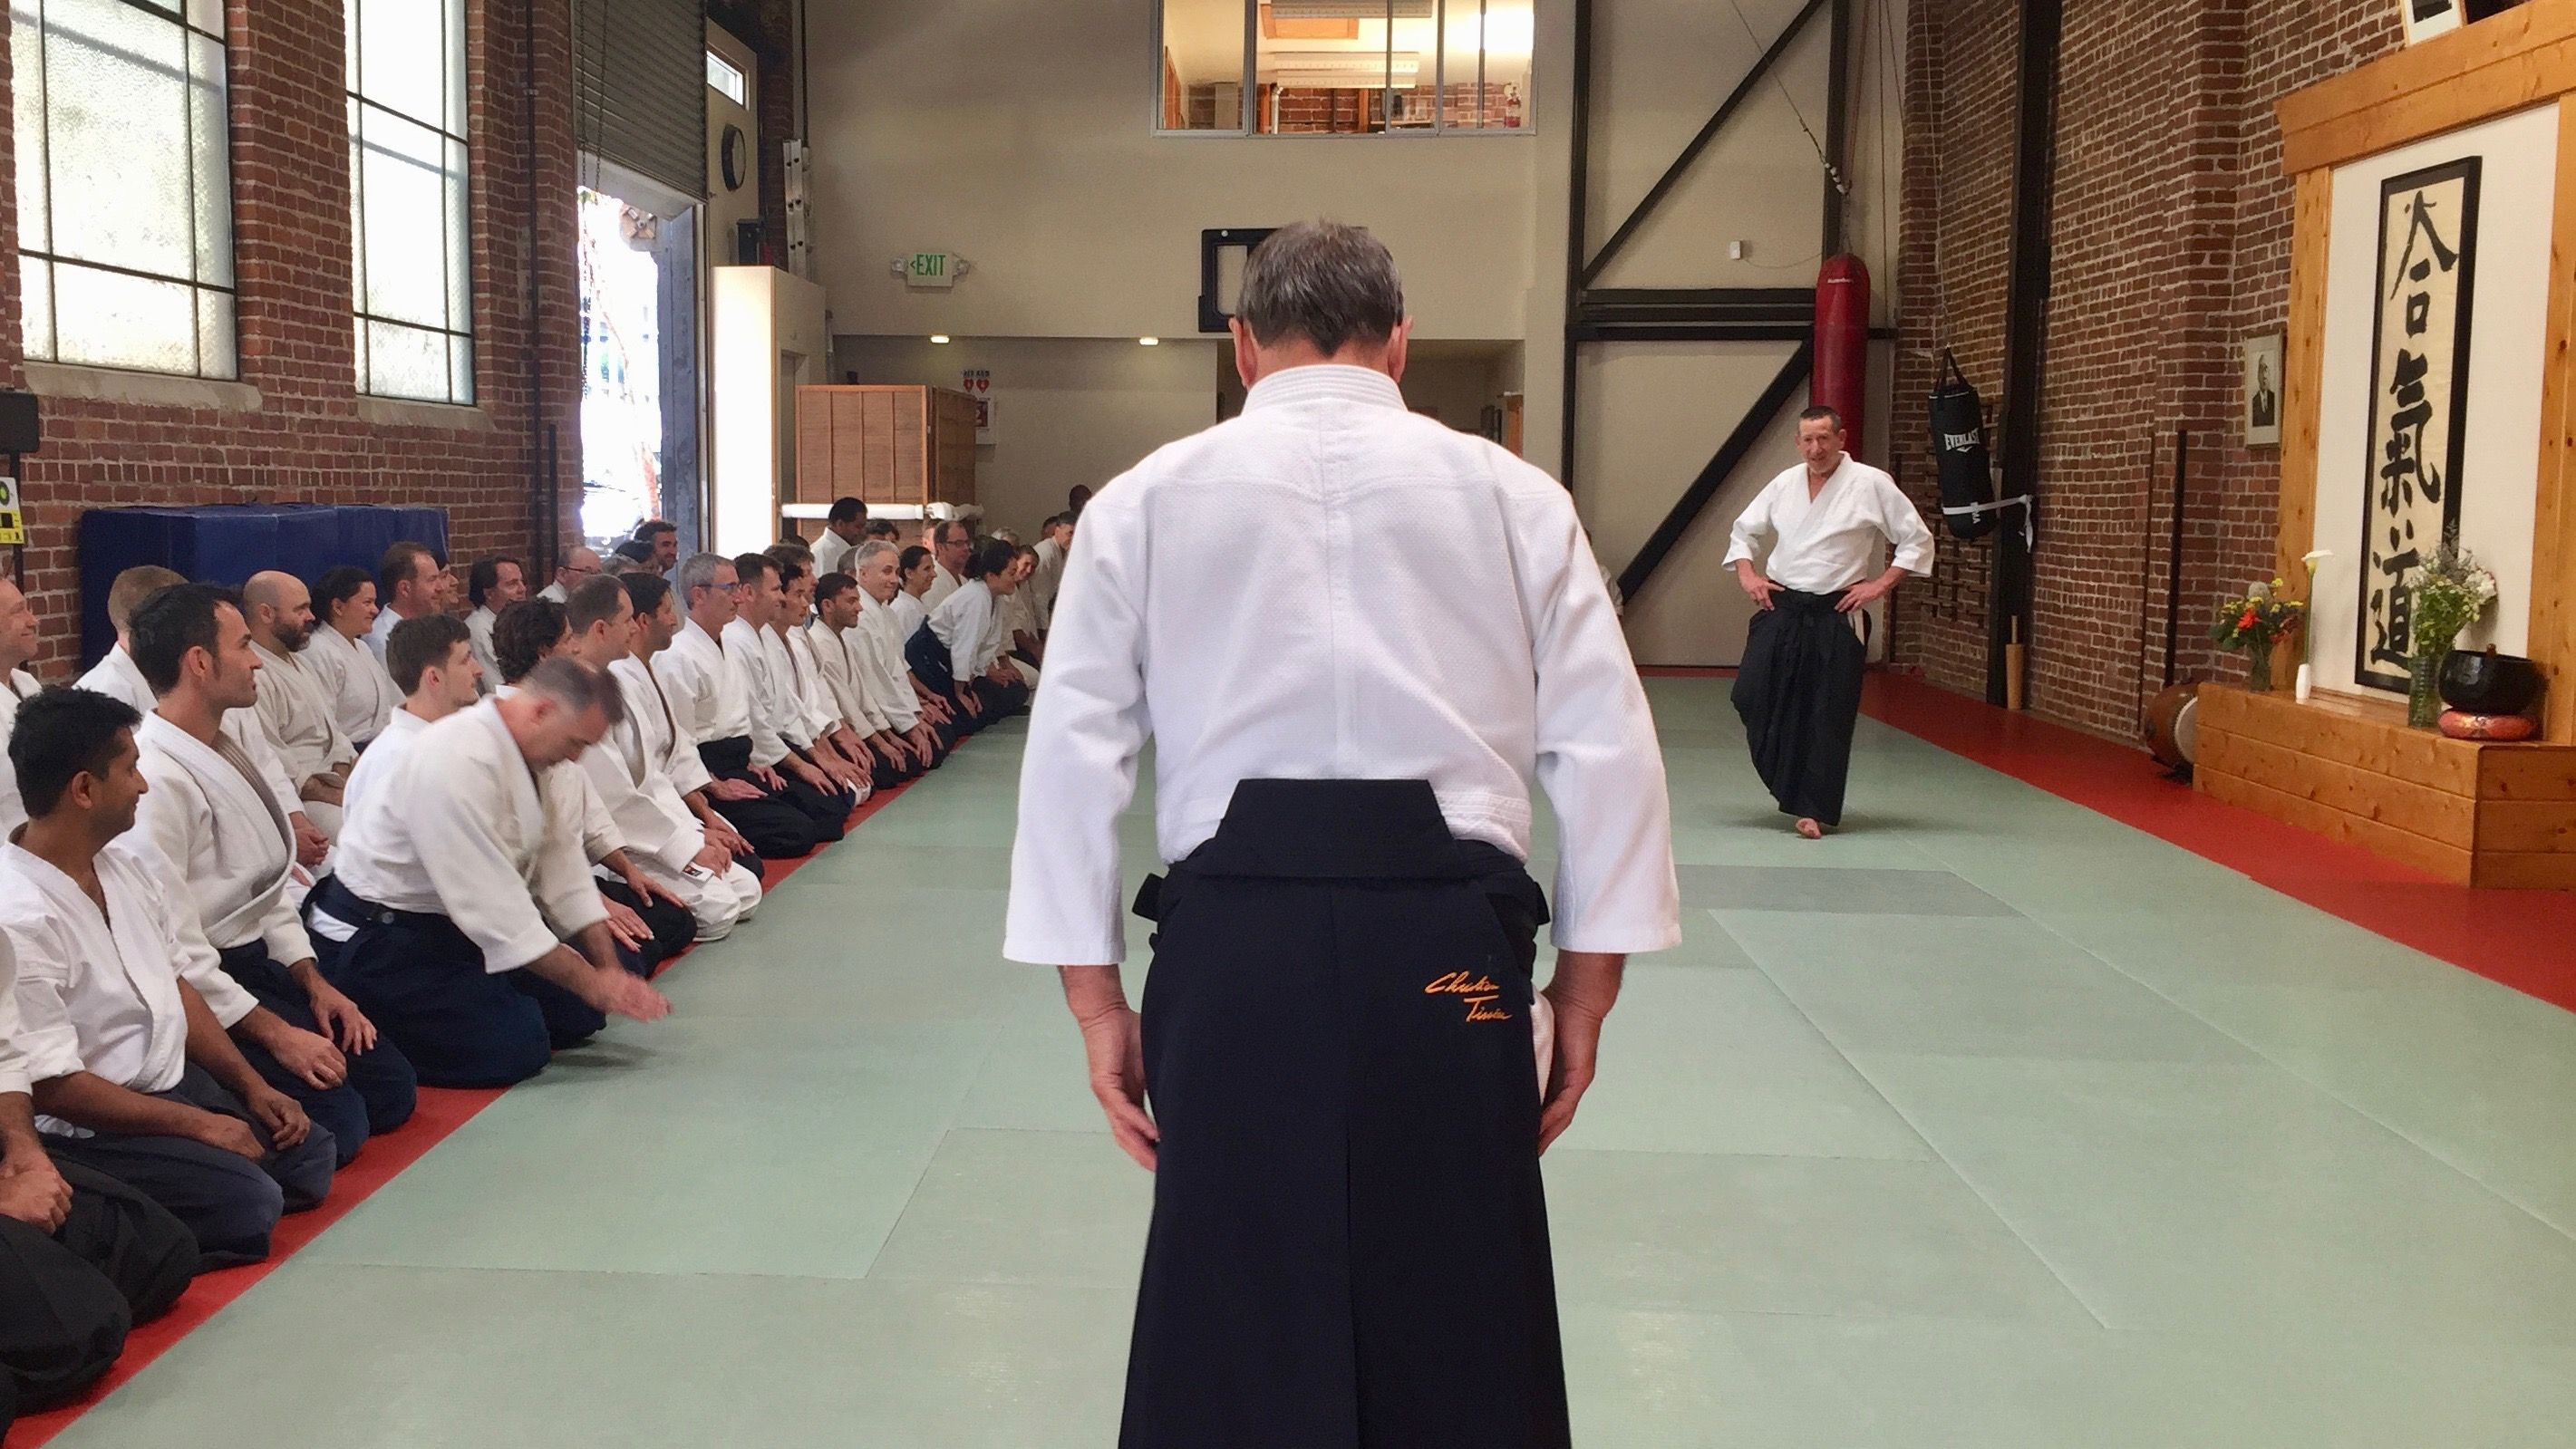 Christian Tissier: 'In aikido, we need to bring people together' – Aikido  Journal | Aikido | Pinterest | Aikido